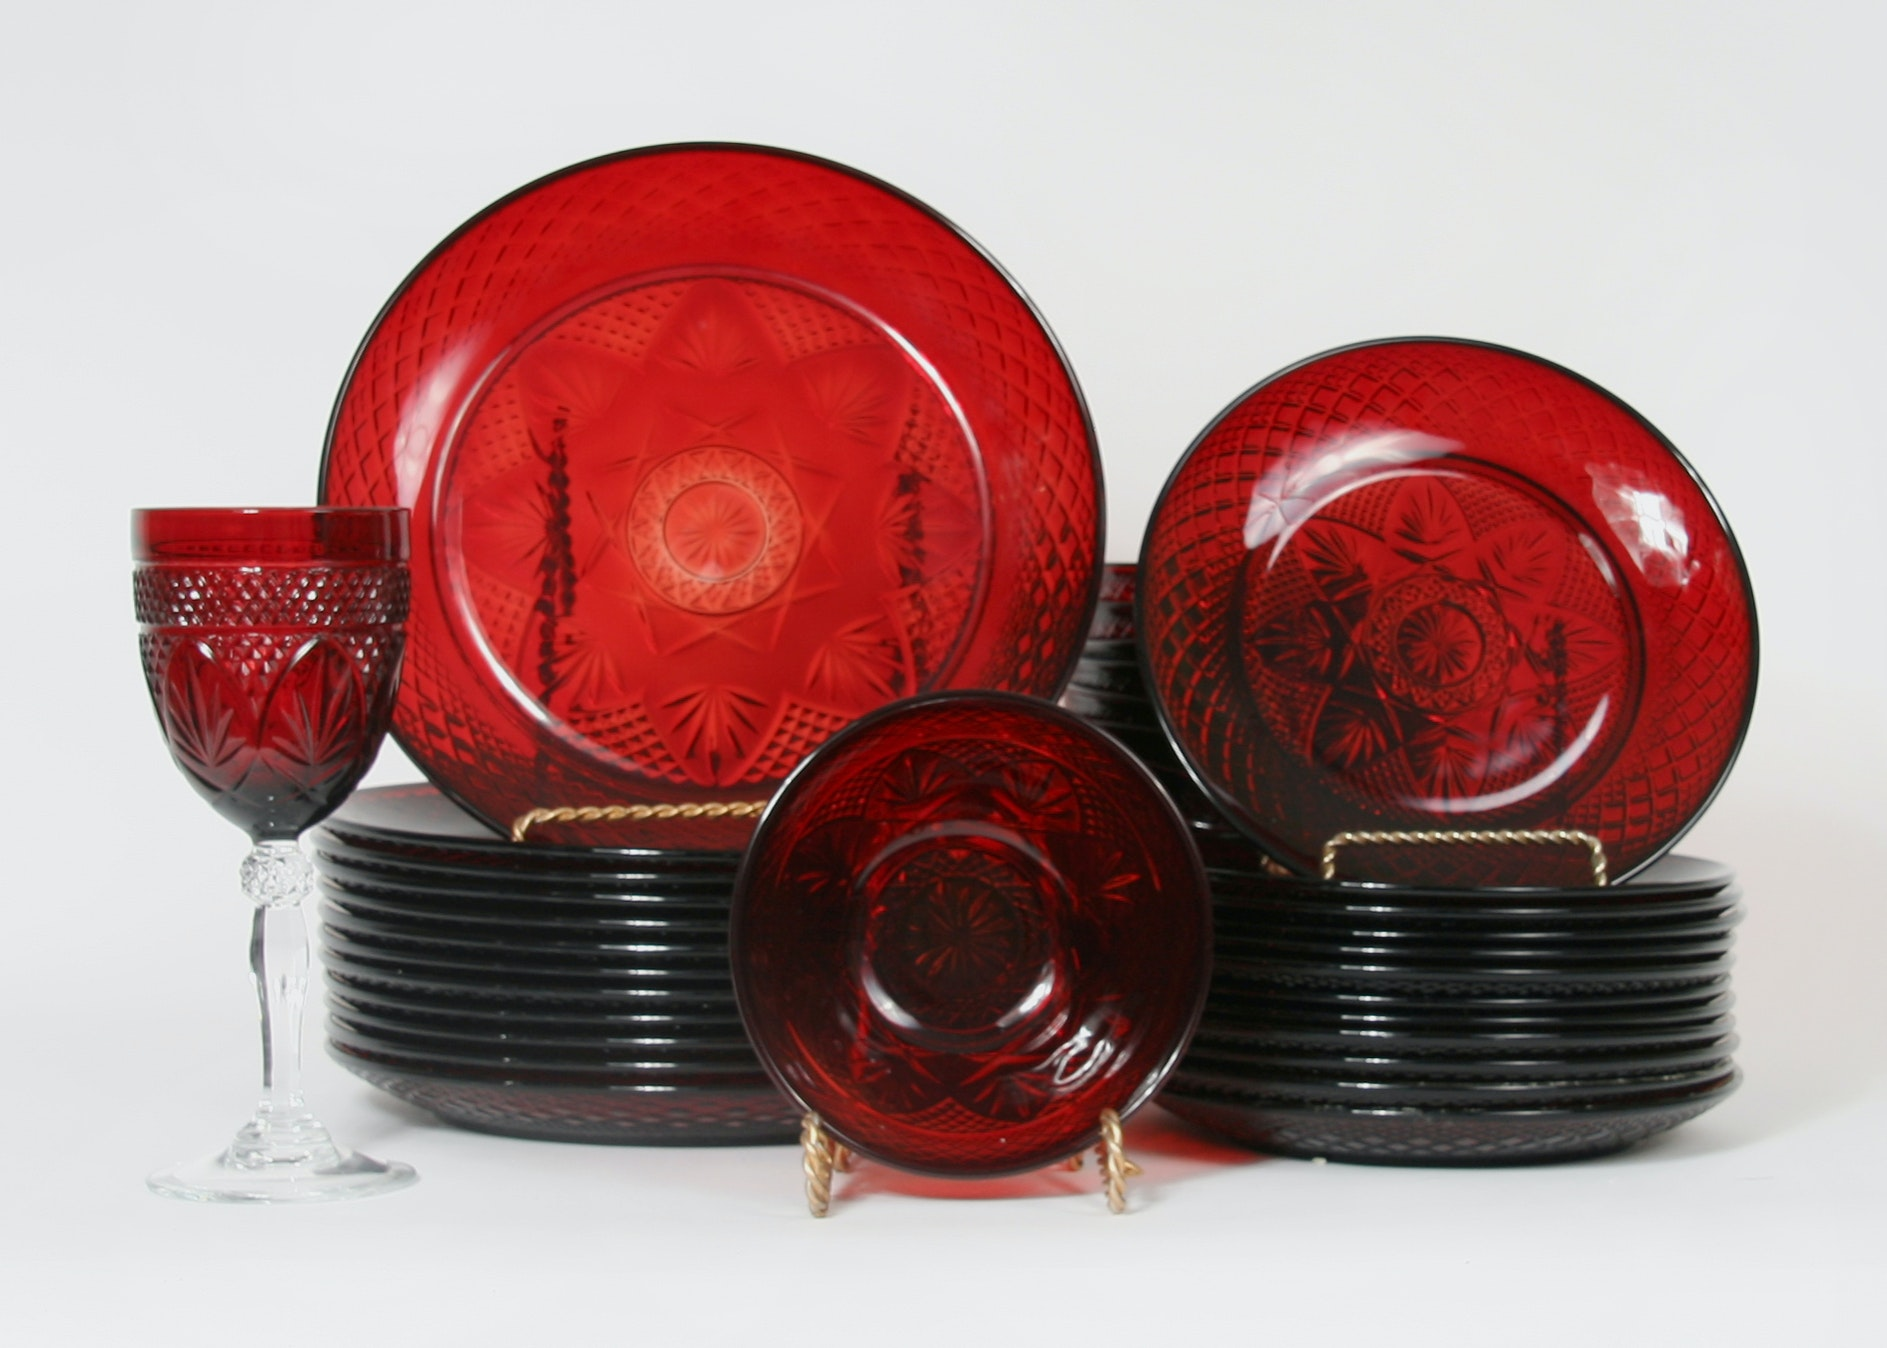 Vintage Collection of Ruby Red Arcoroc France Glass Dinnerware ... & Vintage Collection of Ruby Red Arcoroc France Glass Dinnerware : EBTH